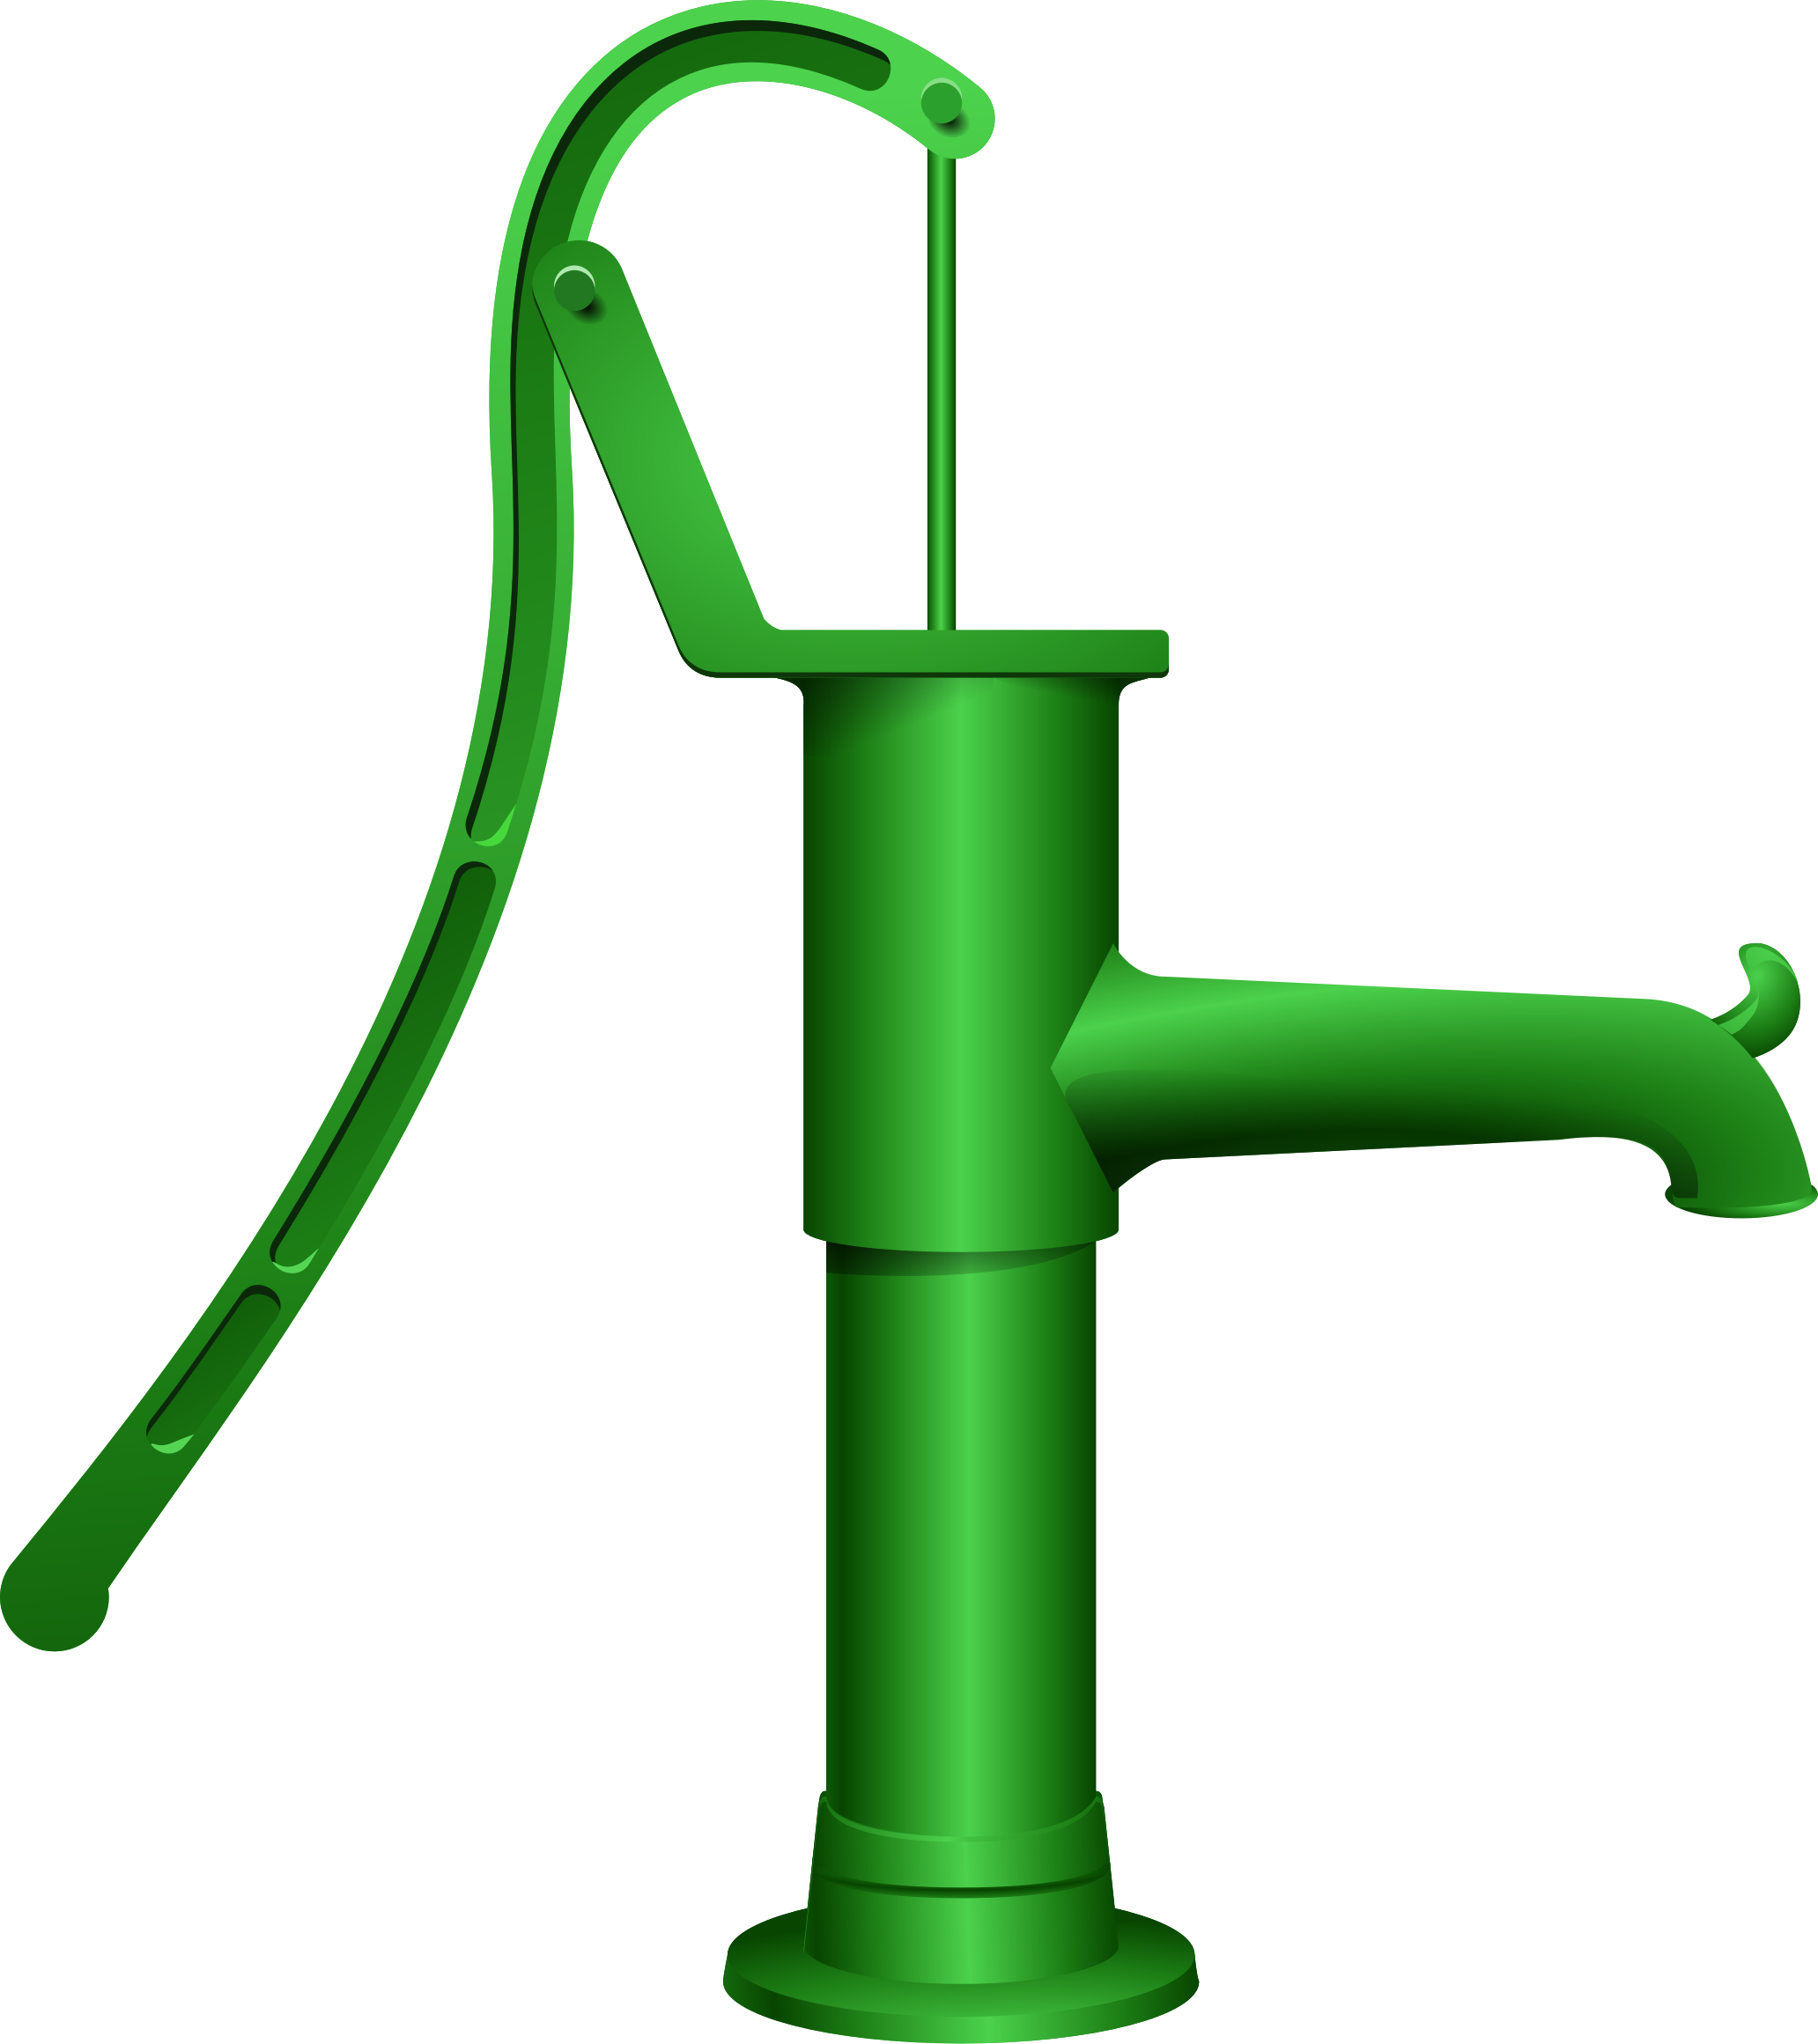 clipart freeuse Pump clipart electric water pump.  collection of hand